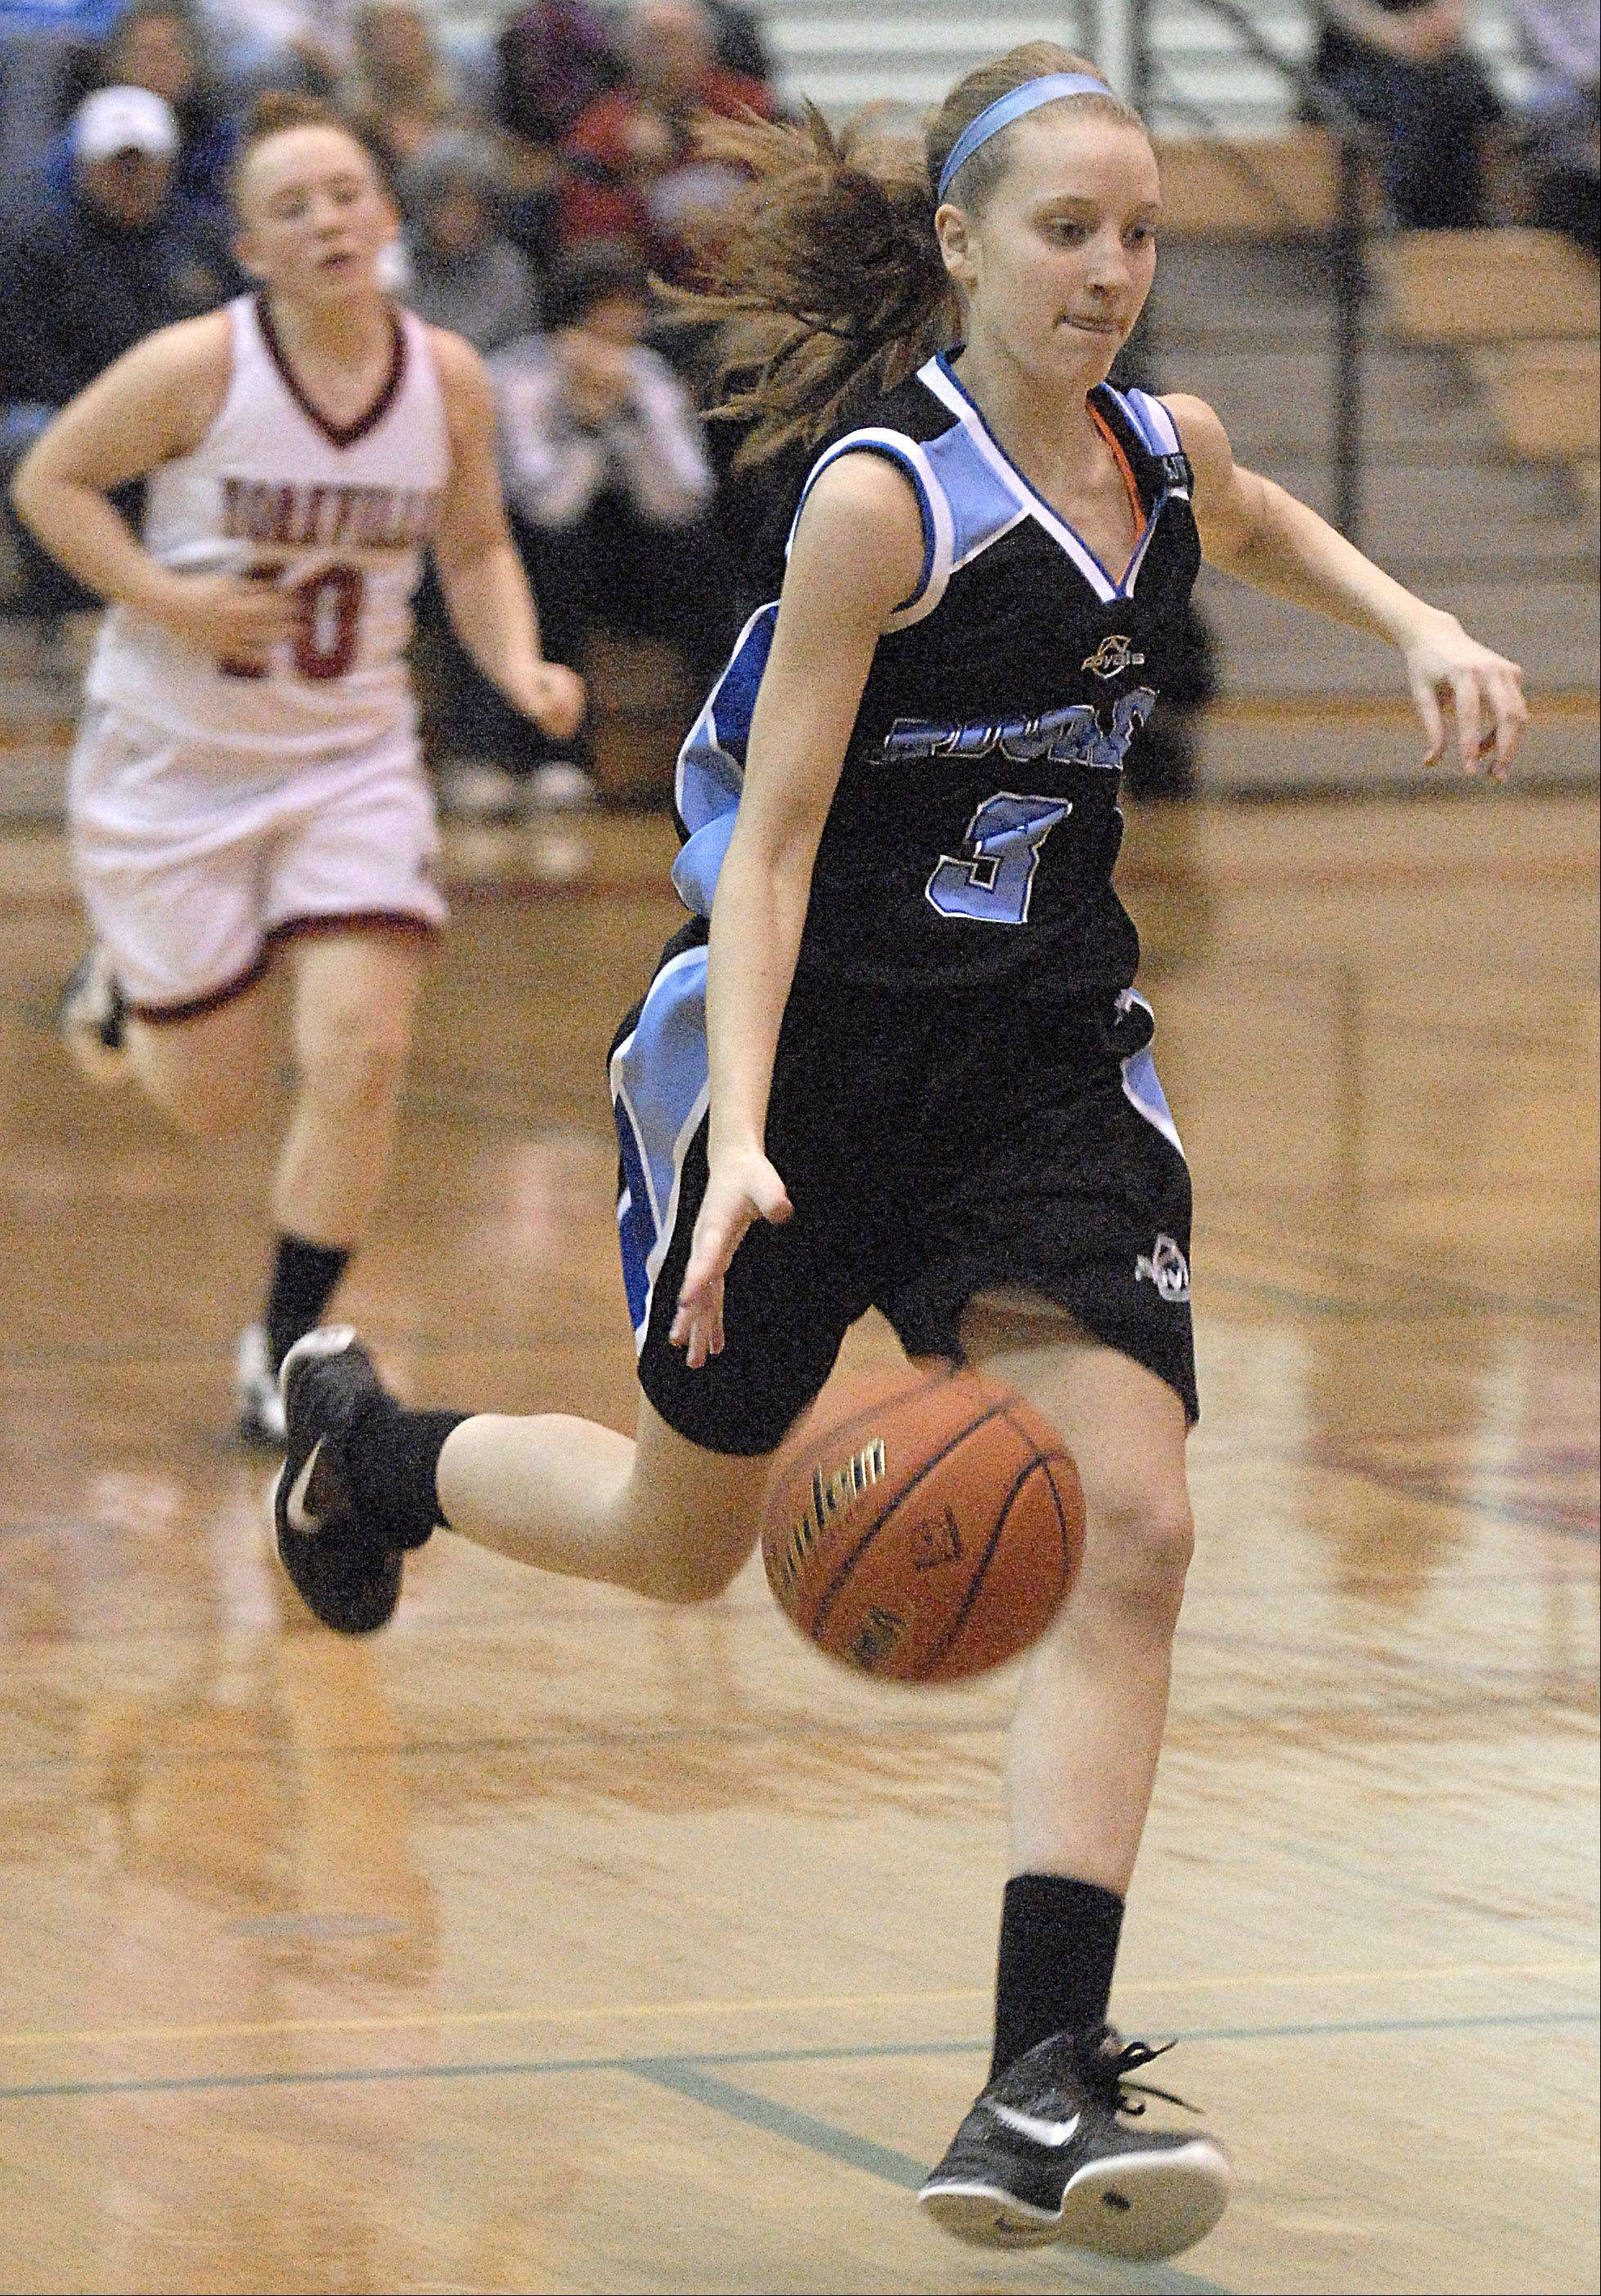 Laura Stoecker/lstoecker@dailyherald.com � Rosary's Rachel Choice sprints down the court in the first quarter vs Yorkville at the regional game on Wednesday, February 15.